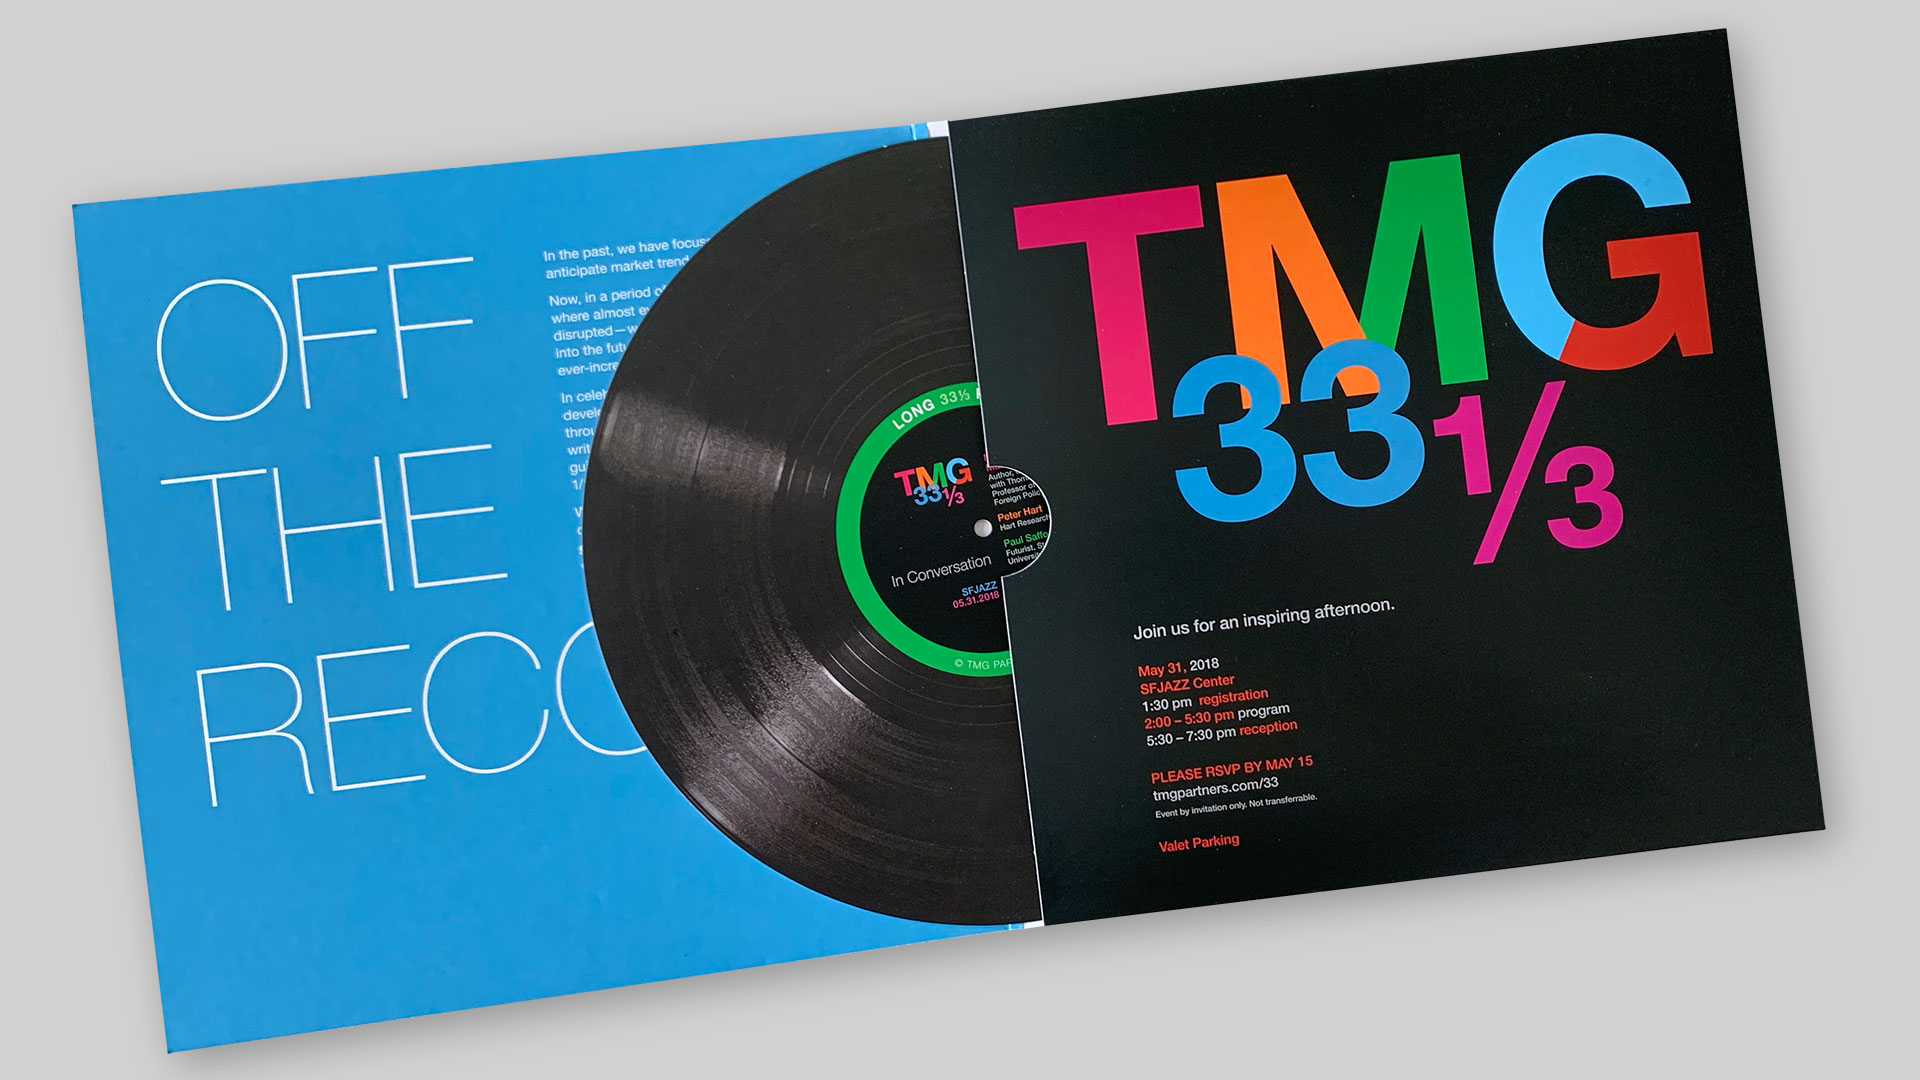 Event invitation designed as a record album cover, with printed record inside.